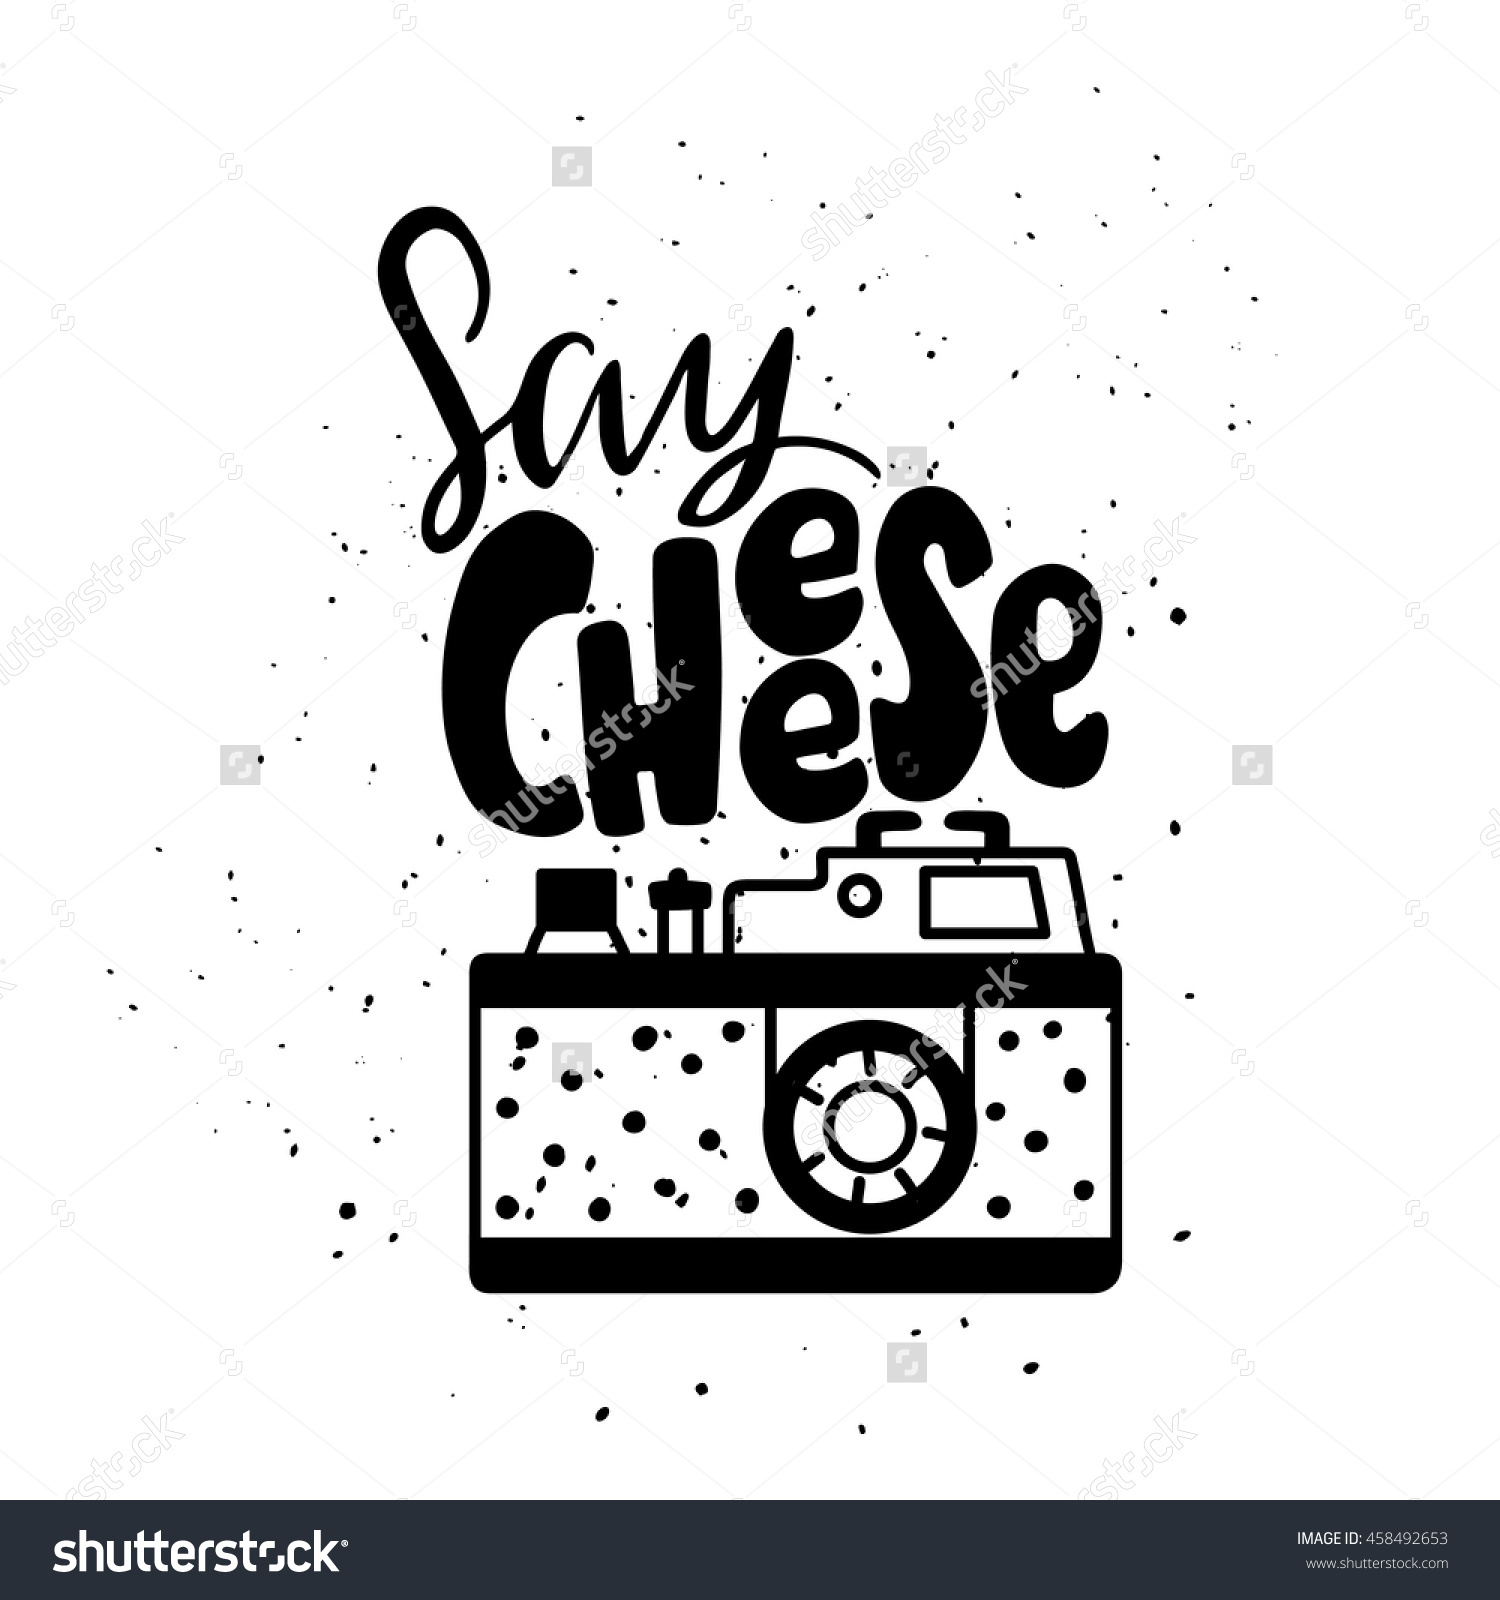 Real cheese logo clipart jpg library library Vector Illustration With Photo Camera Logo. Lettering. Say Cheese ... jpg library library